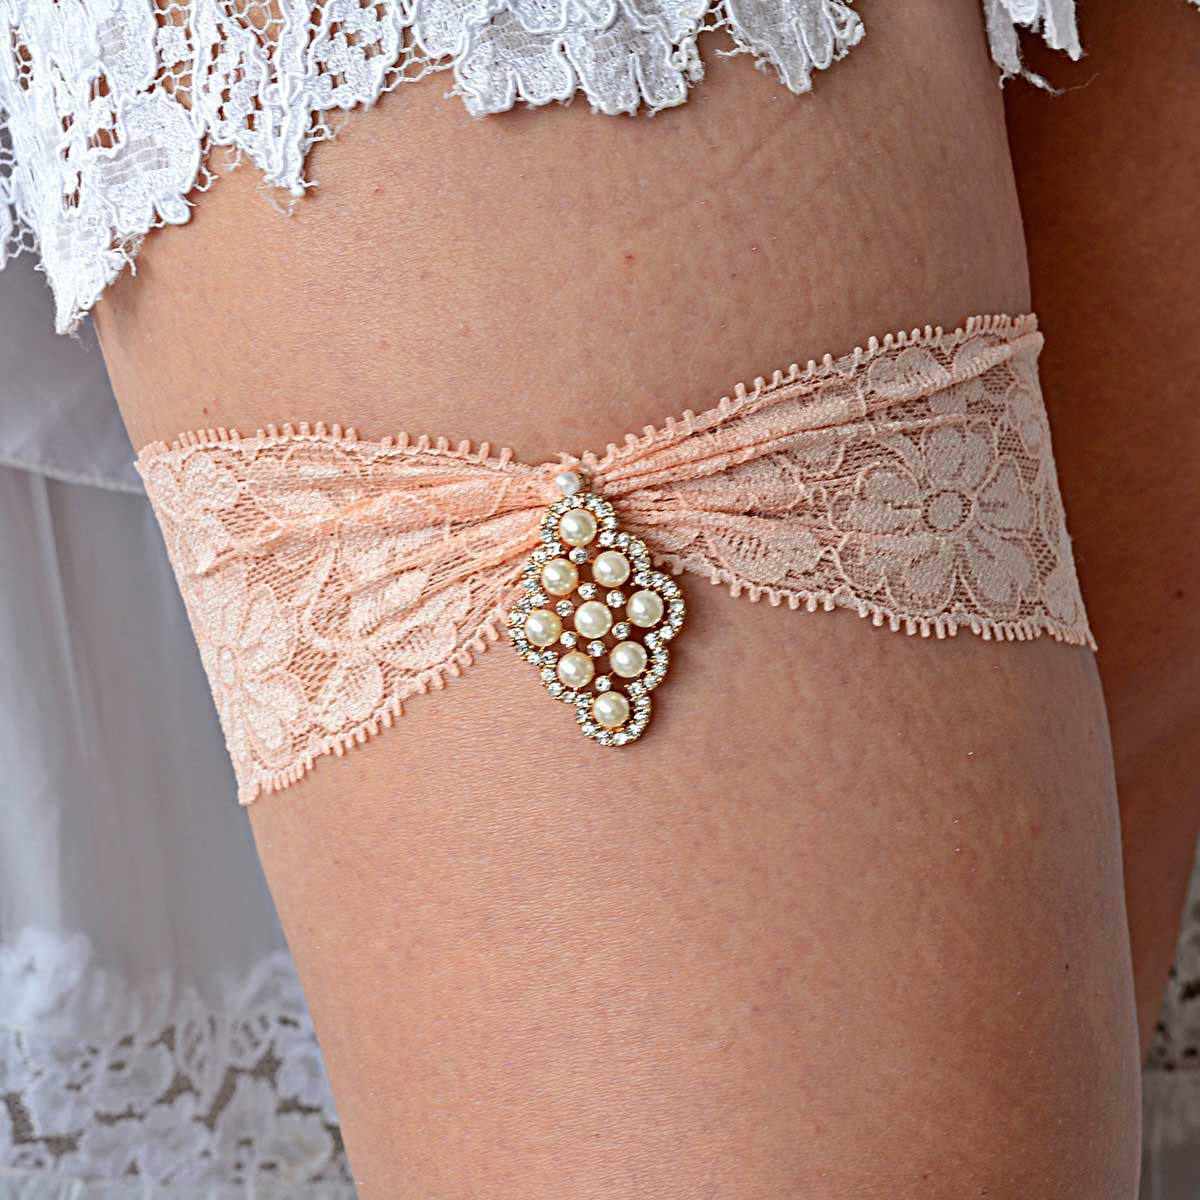 Peach Bridal Garter With Rhinestones & Pearls Handmade